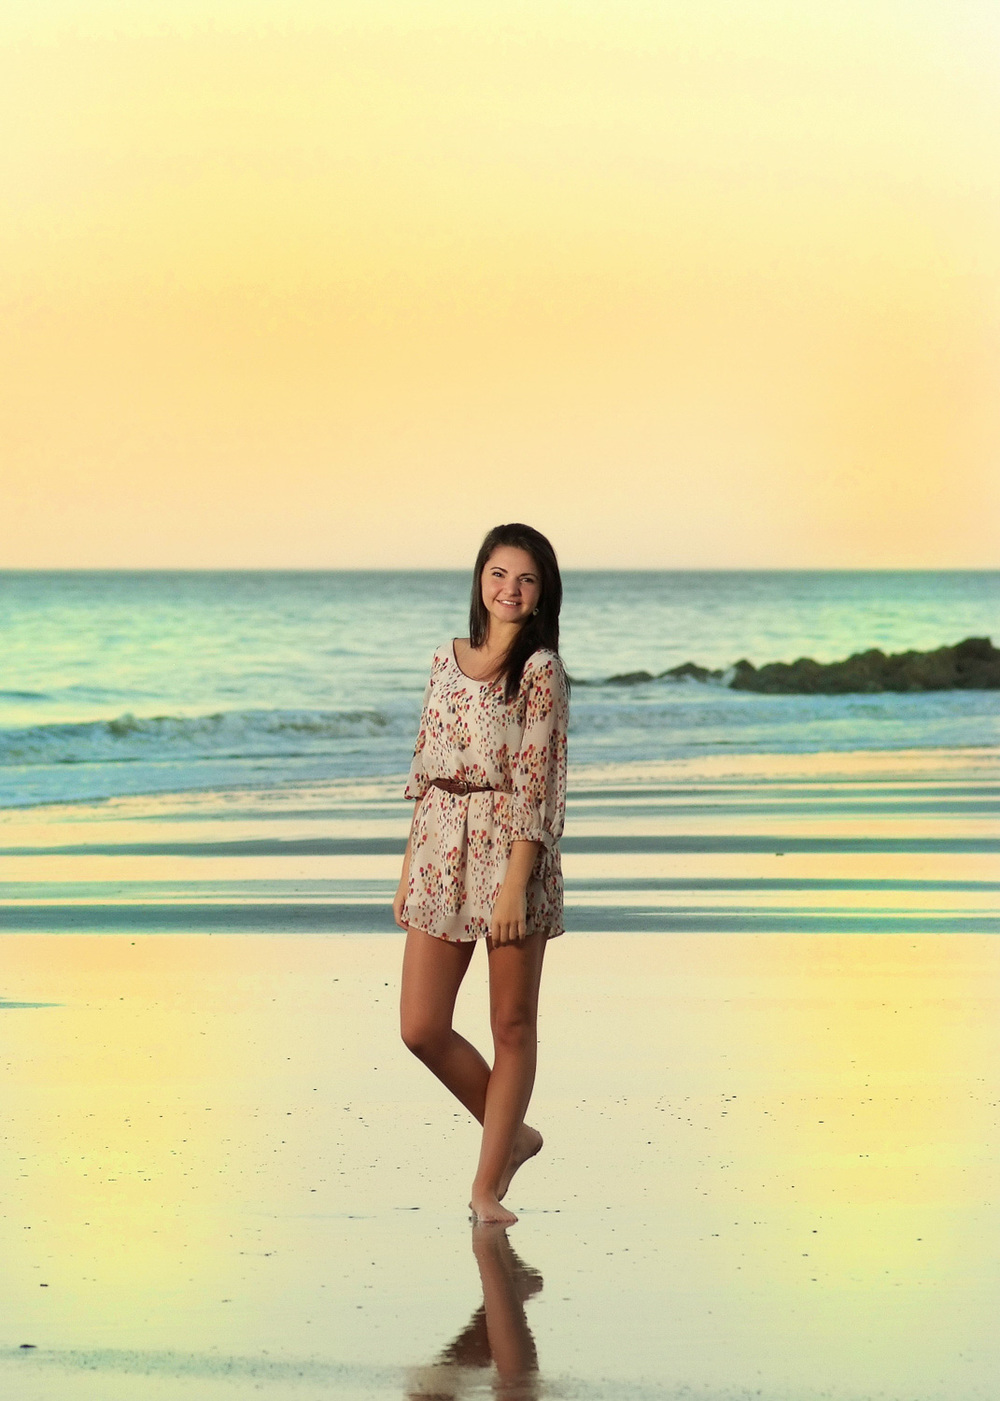 beach_portraits_beaufort-11.jpg